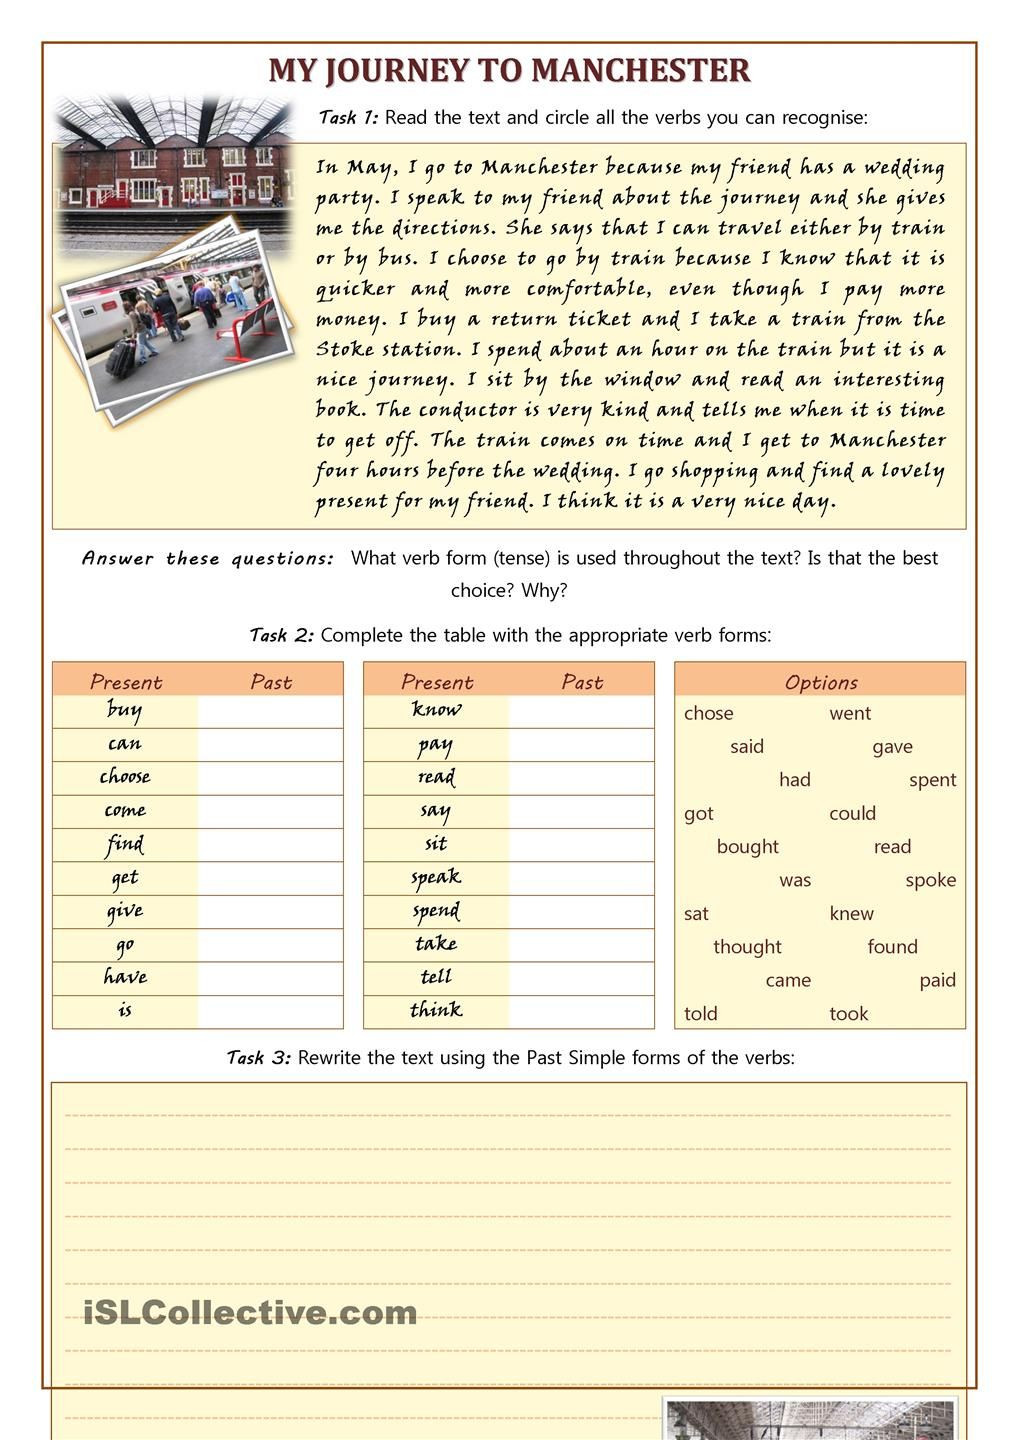 Proofreading Practice Middle School My Journey to Manchester Using Irregular Verbs Proofreading